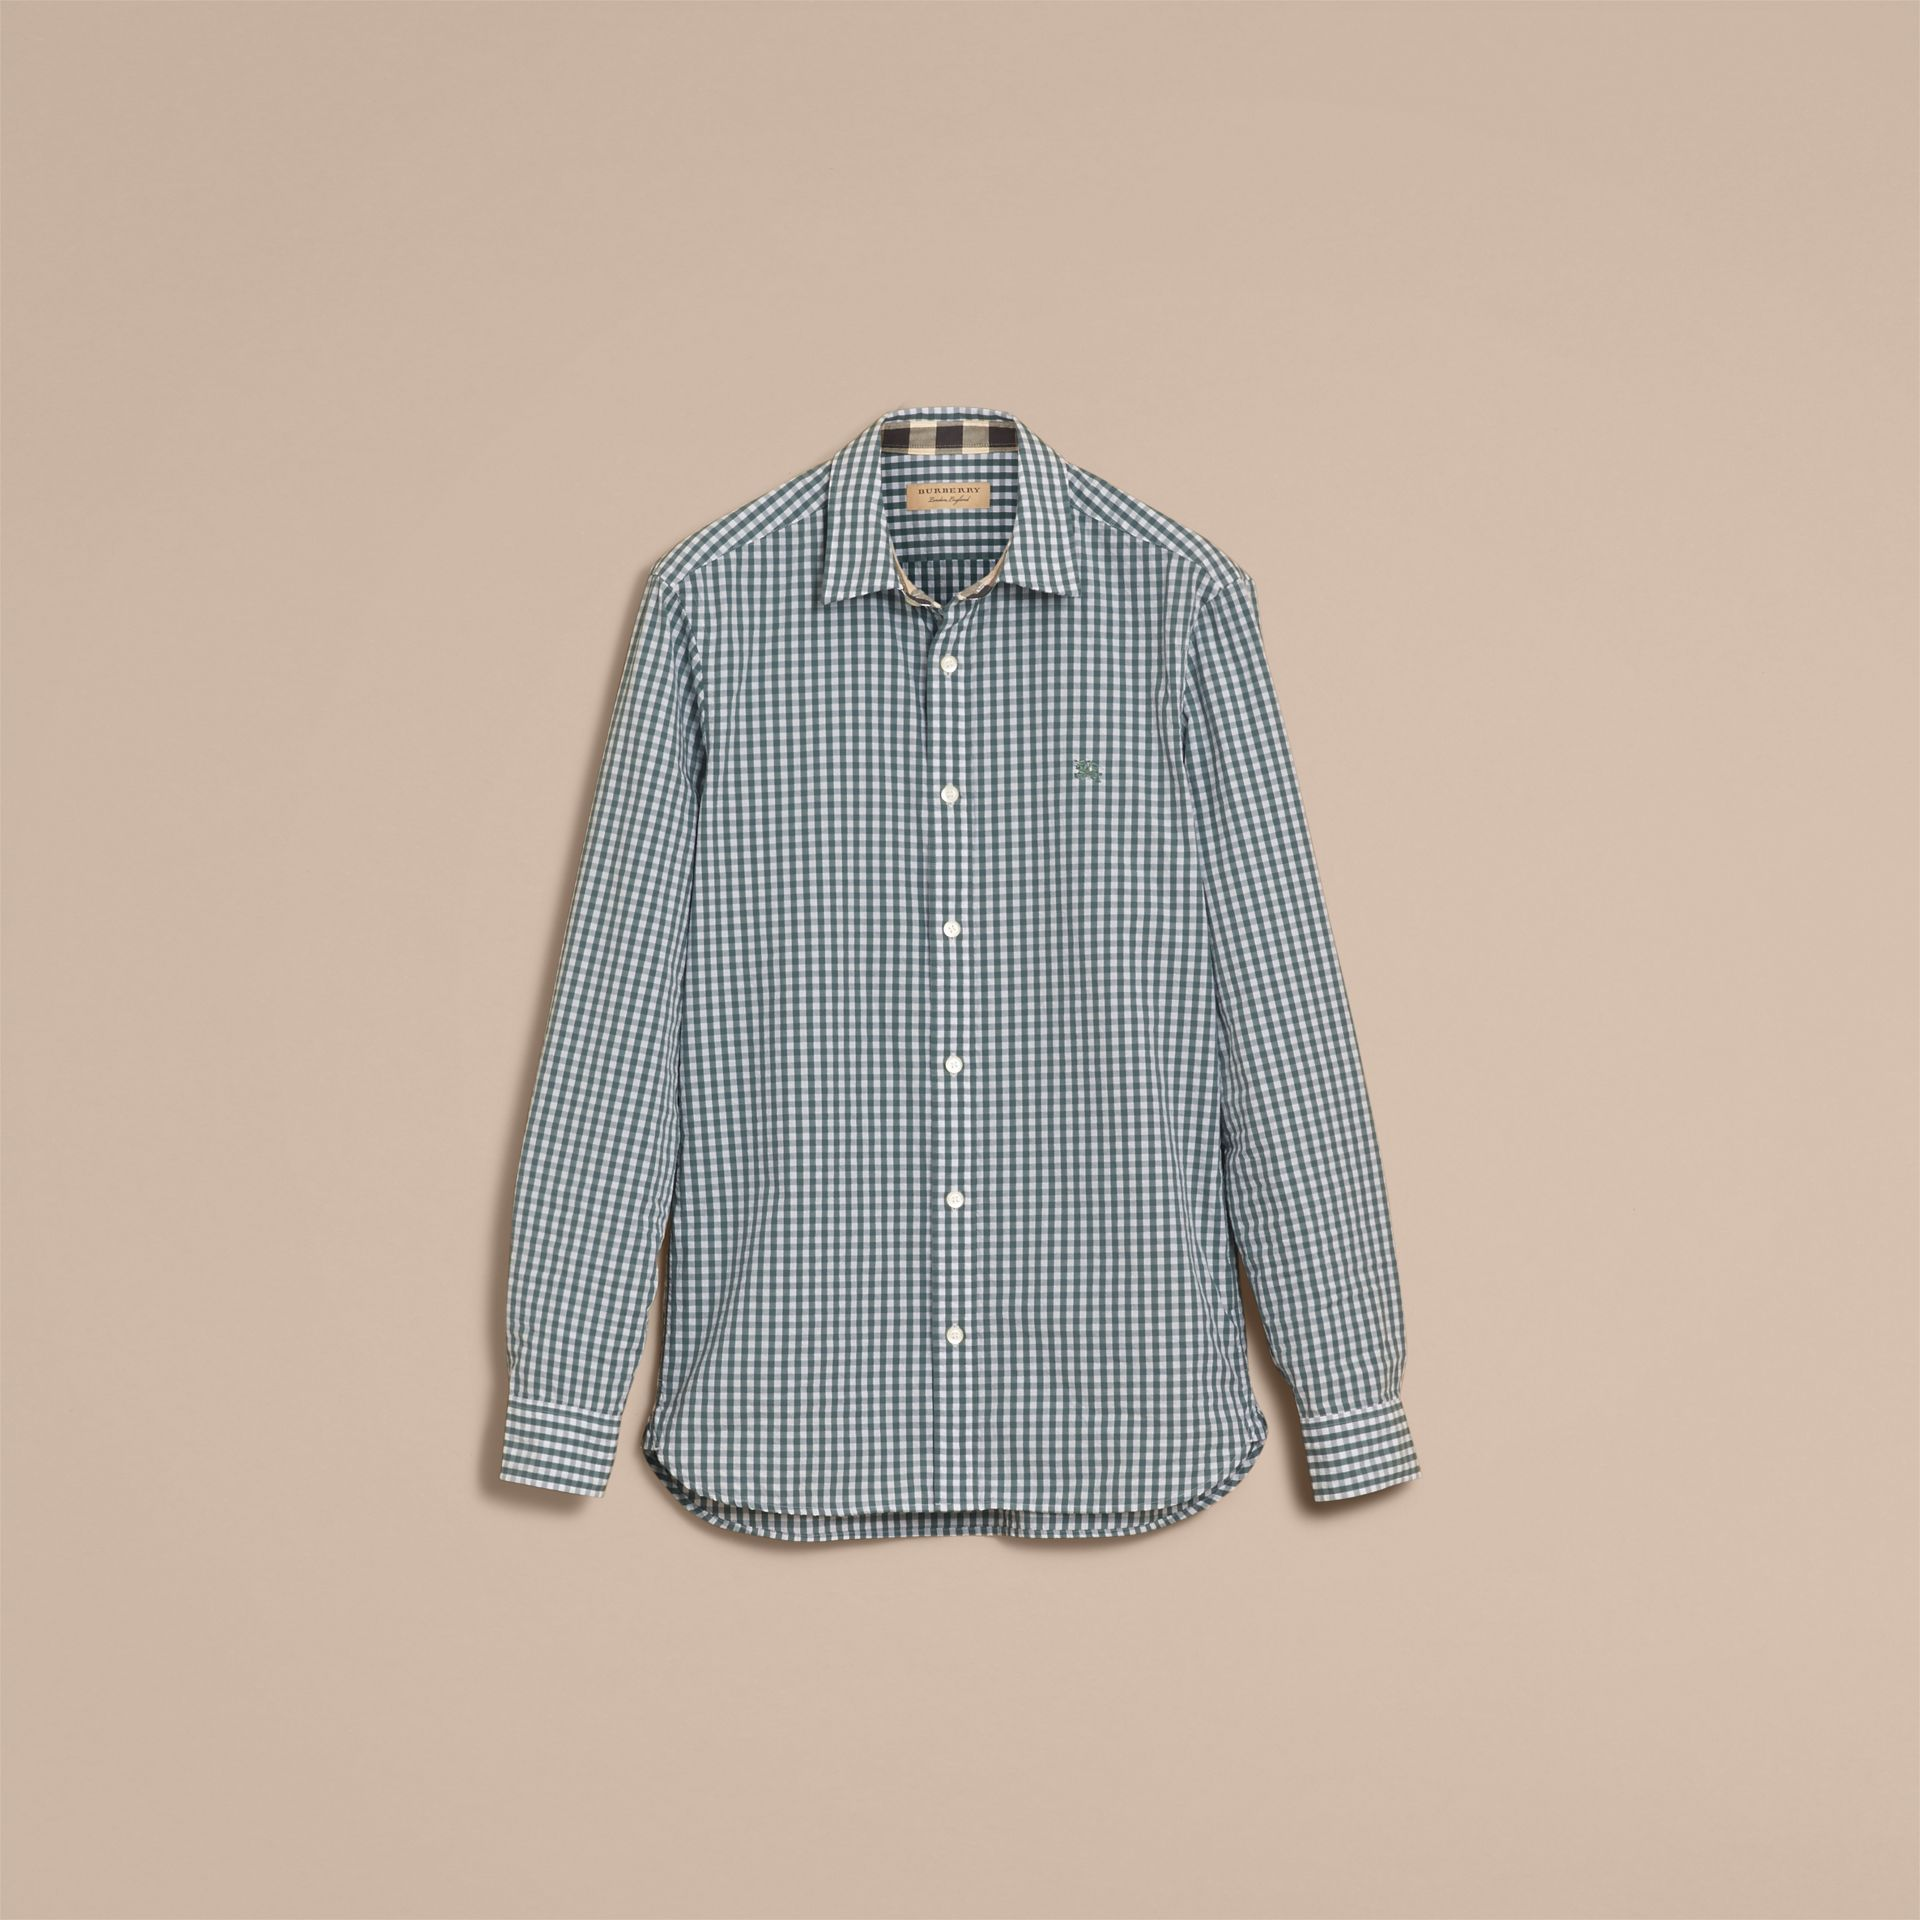 Gingham Cotton Poplin Shirt with Check Detail in Dusty Teal Blue - Men | Burberry Singapore - gallery image 4